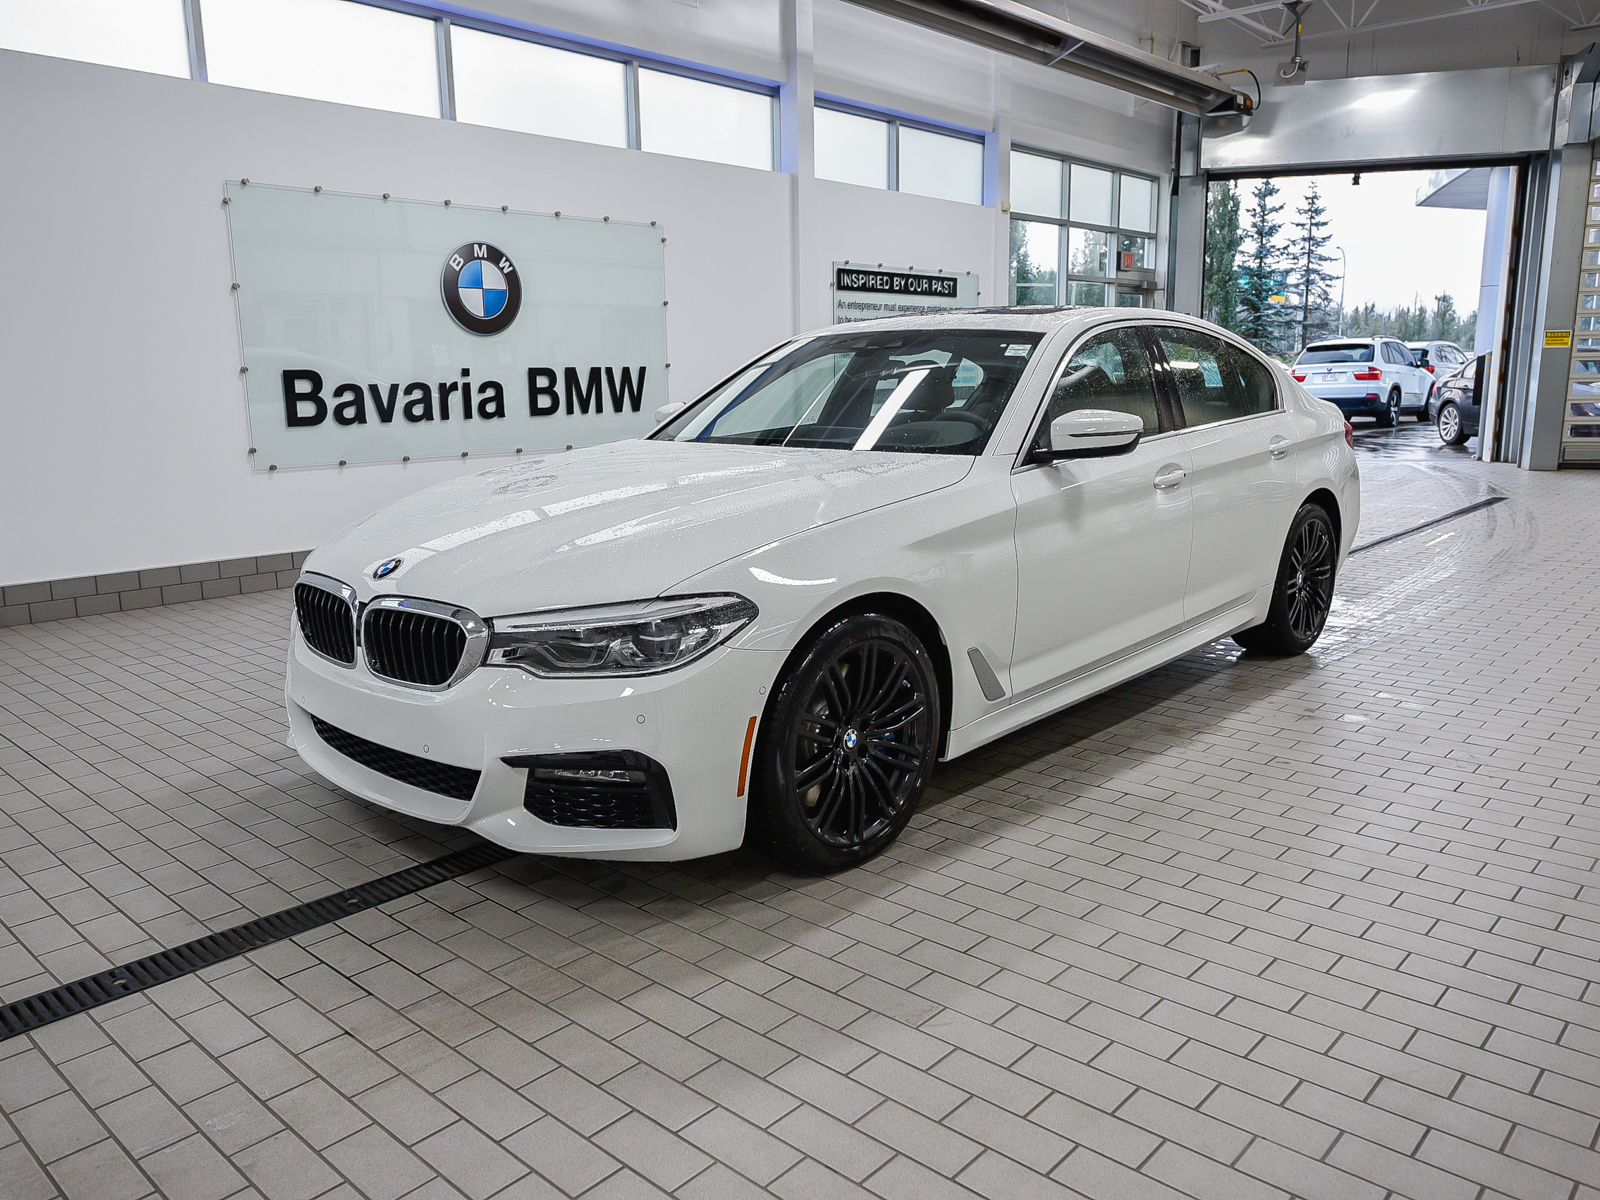 New 2019 Bmw 540i Xdrive Sedan Sedan In Edmonton 195s3889 Bavaria Bmw